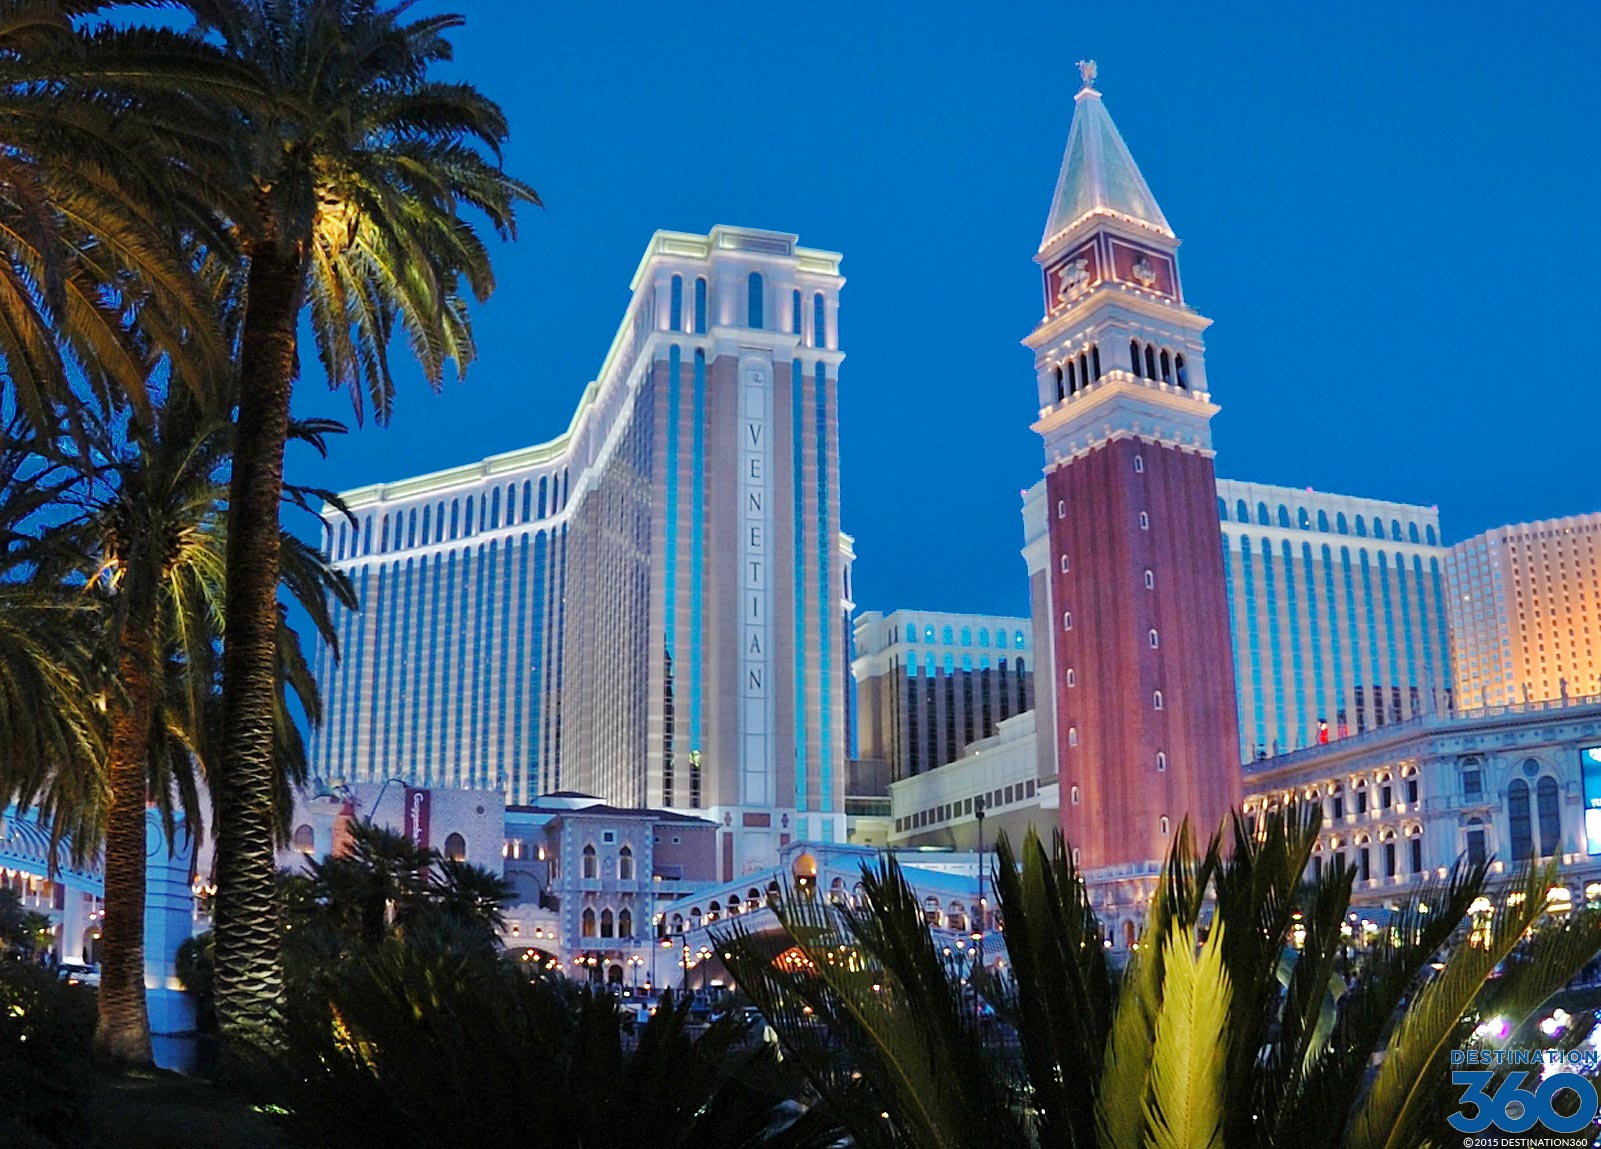 Las Vegas Sands Shares Info About Re-Opening of The Venetian